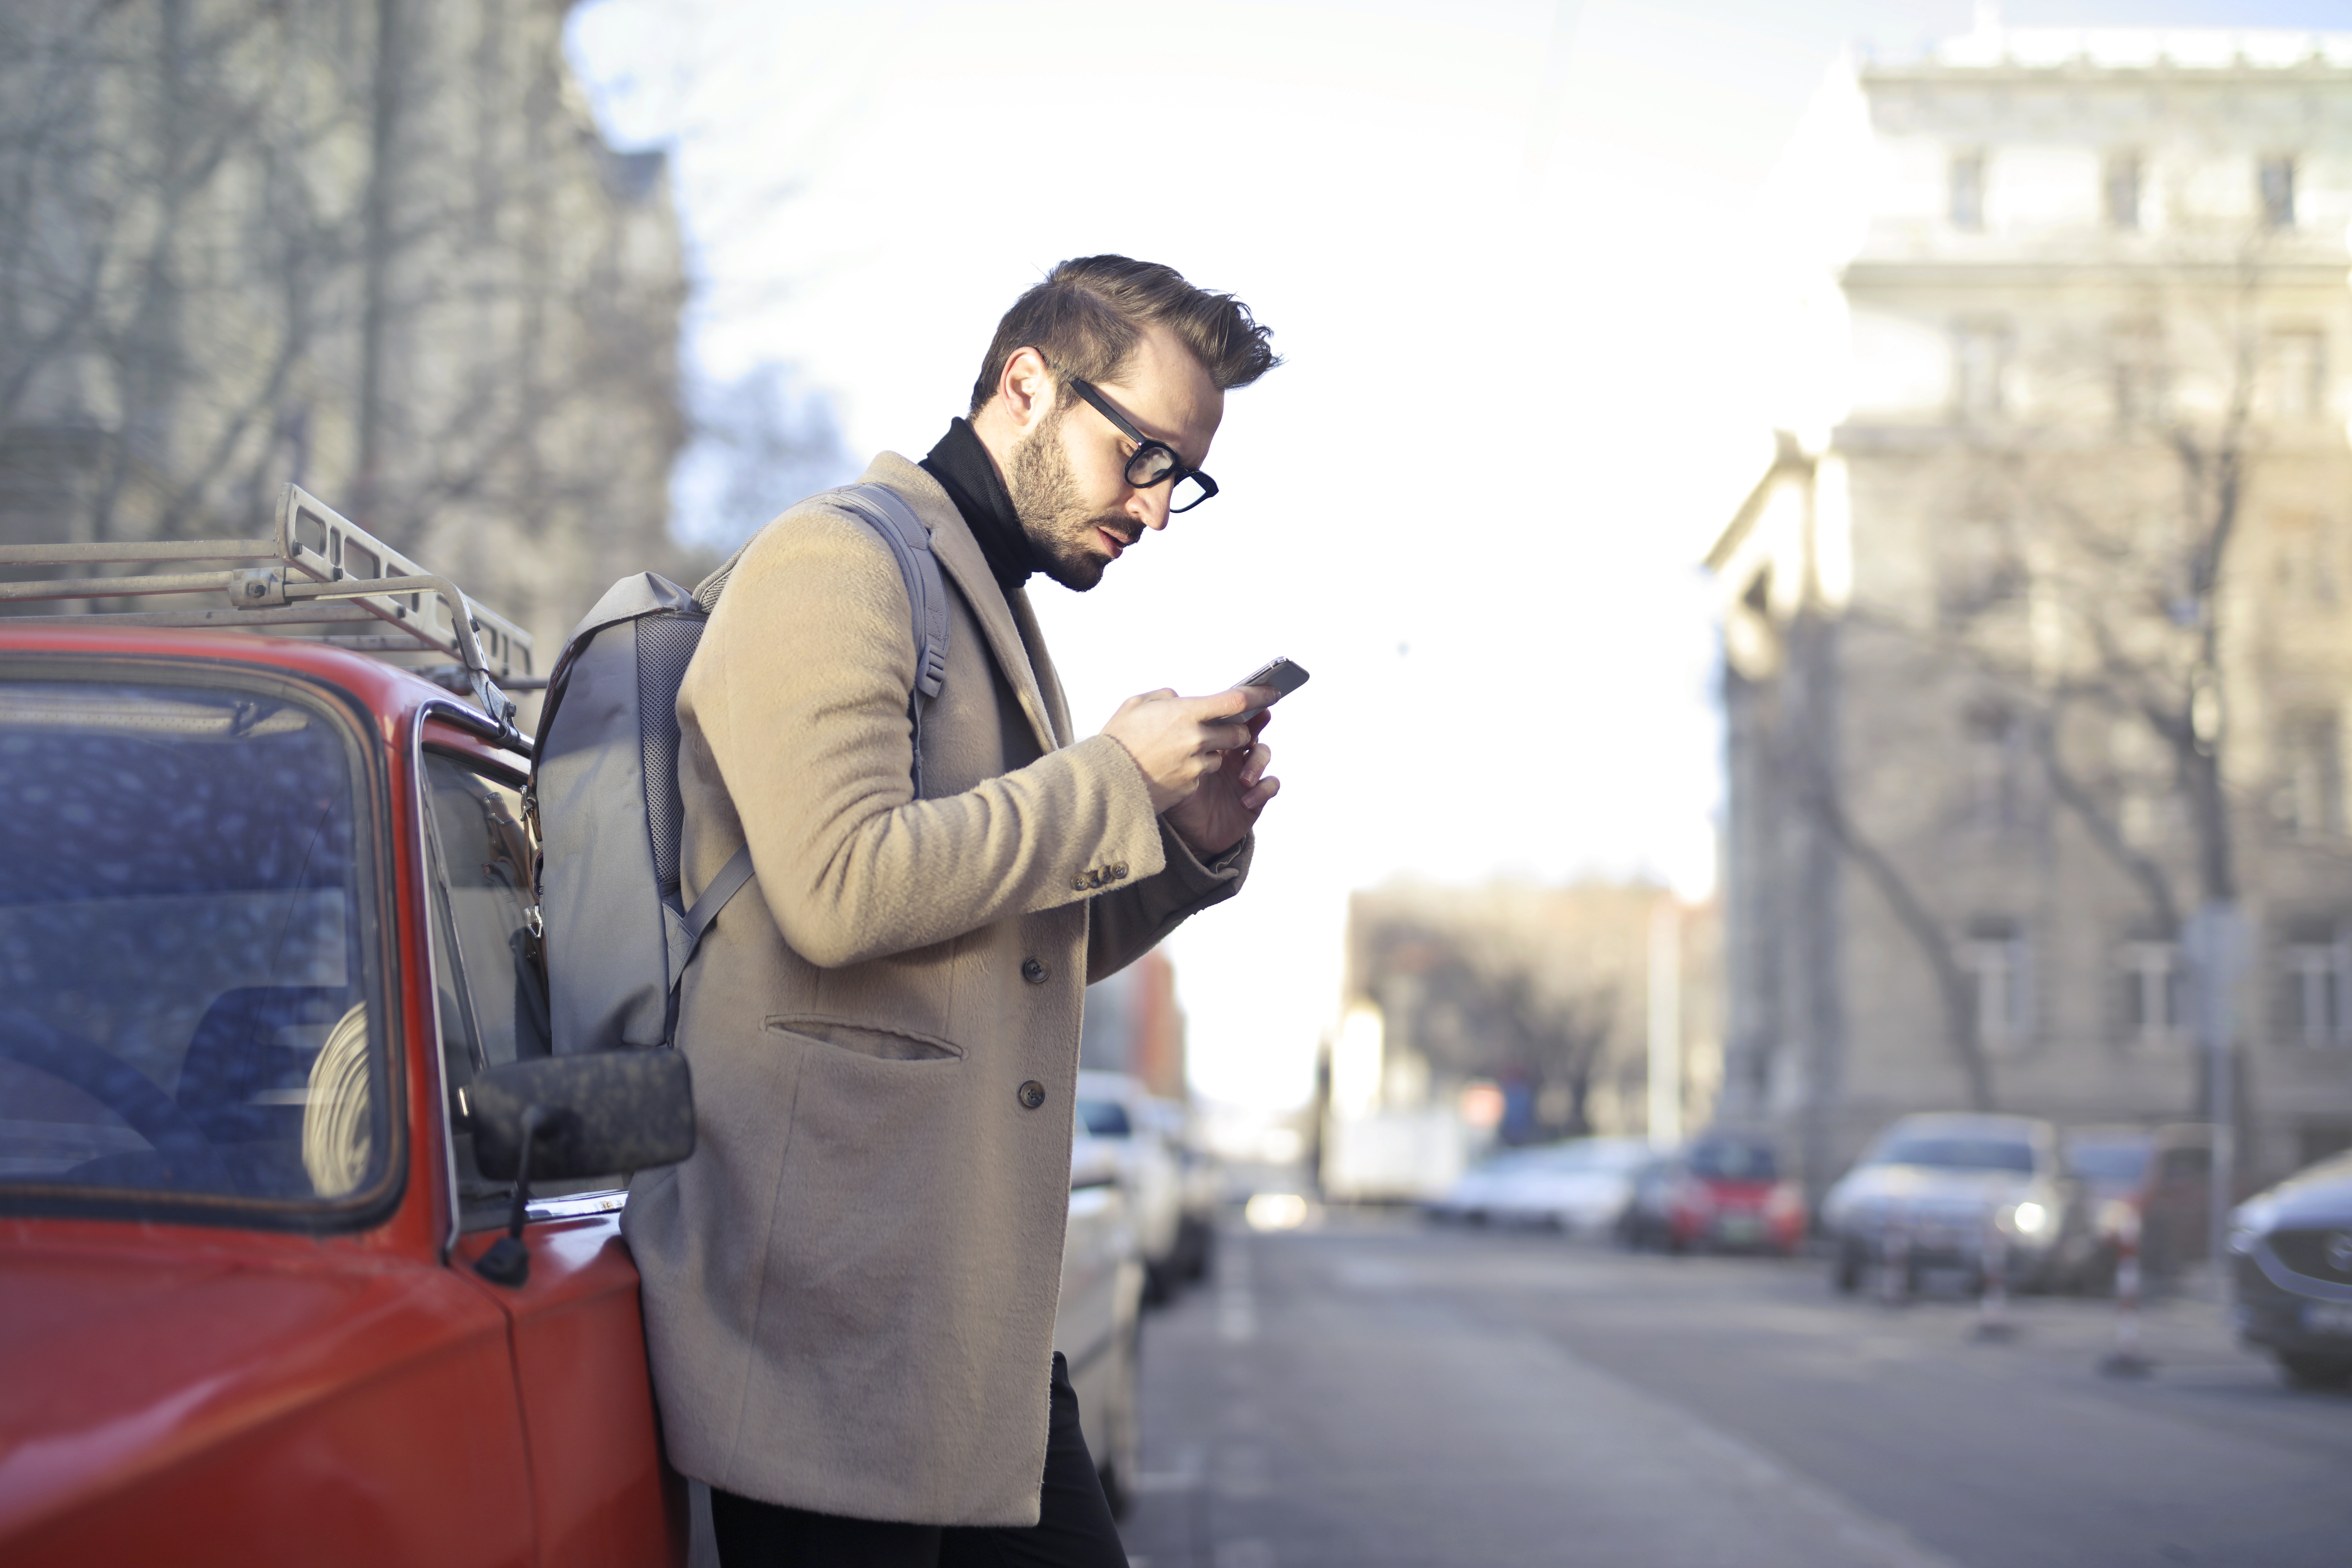 Man in Beige Coat Holding Phone Leaning on Red Vehicle